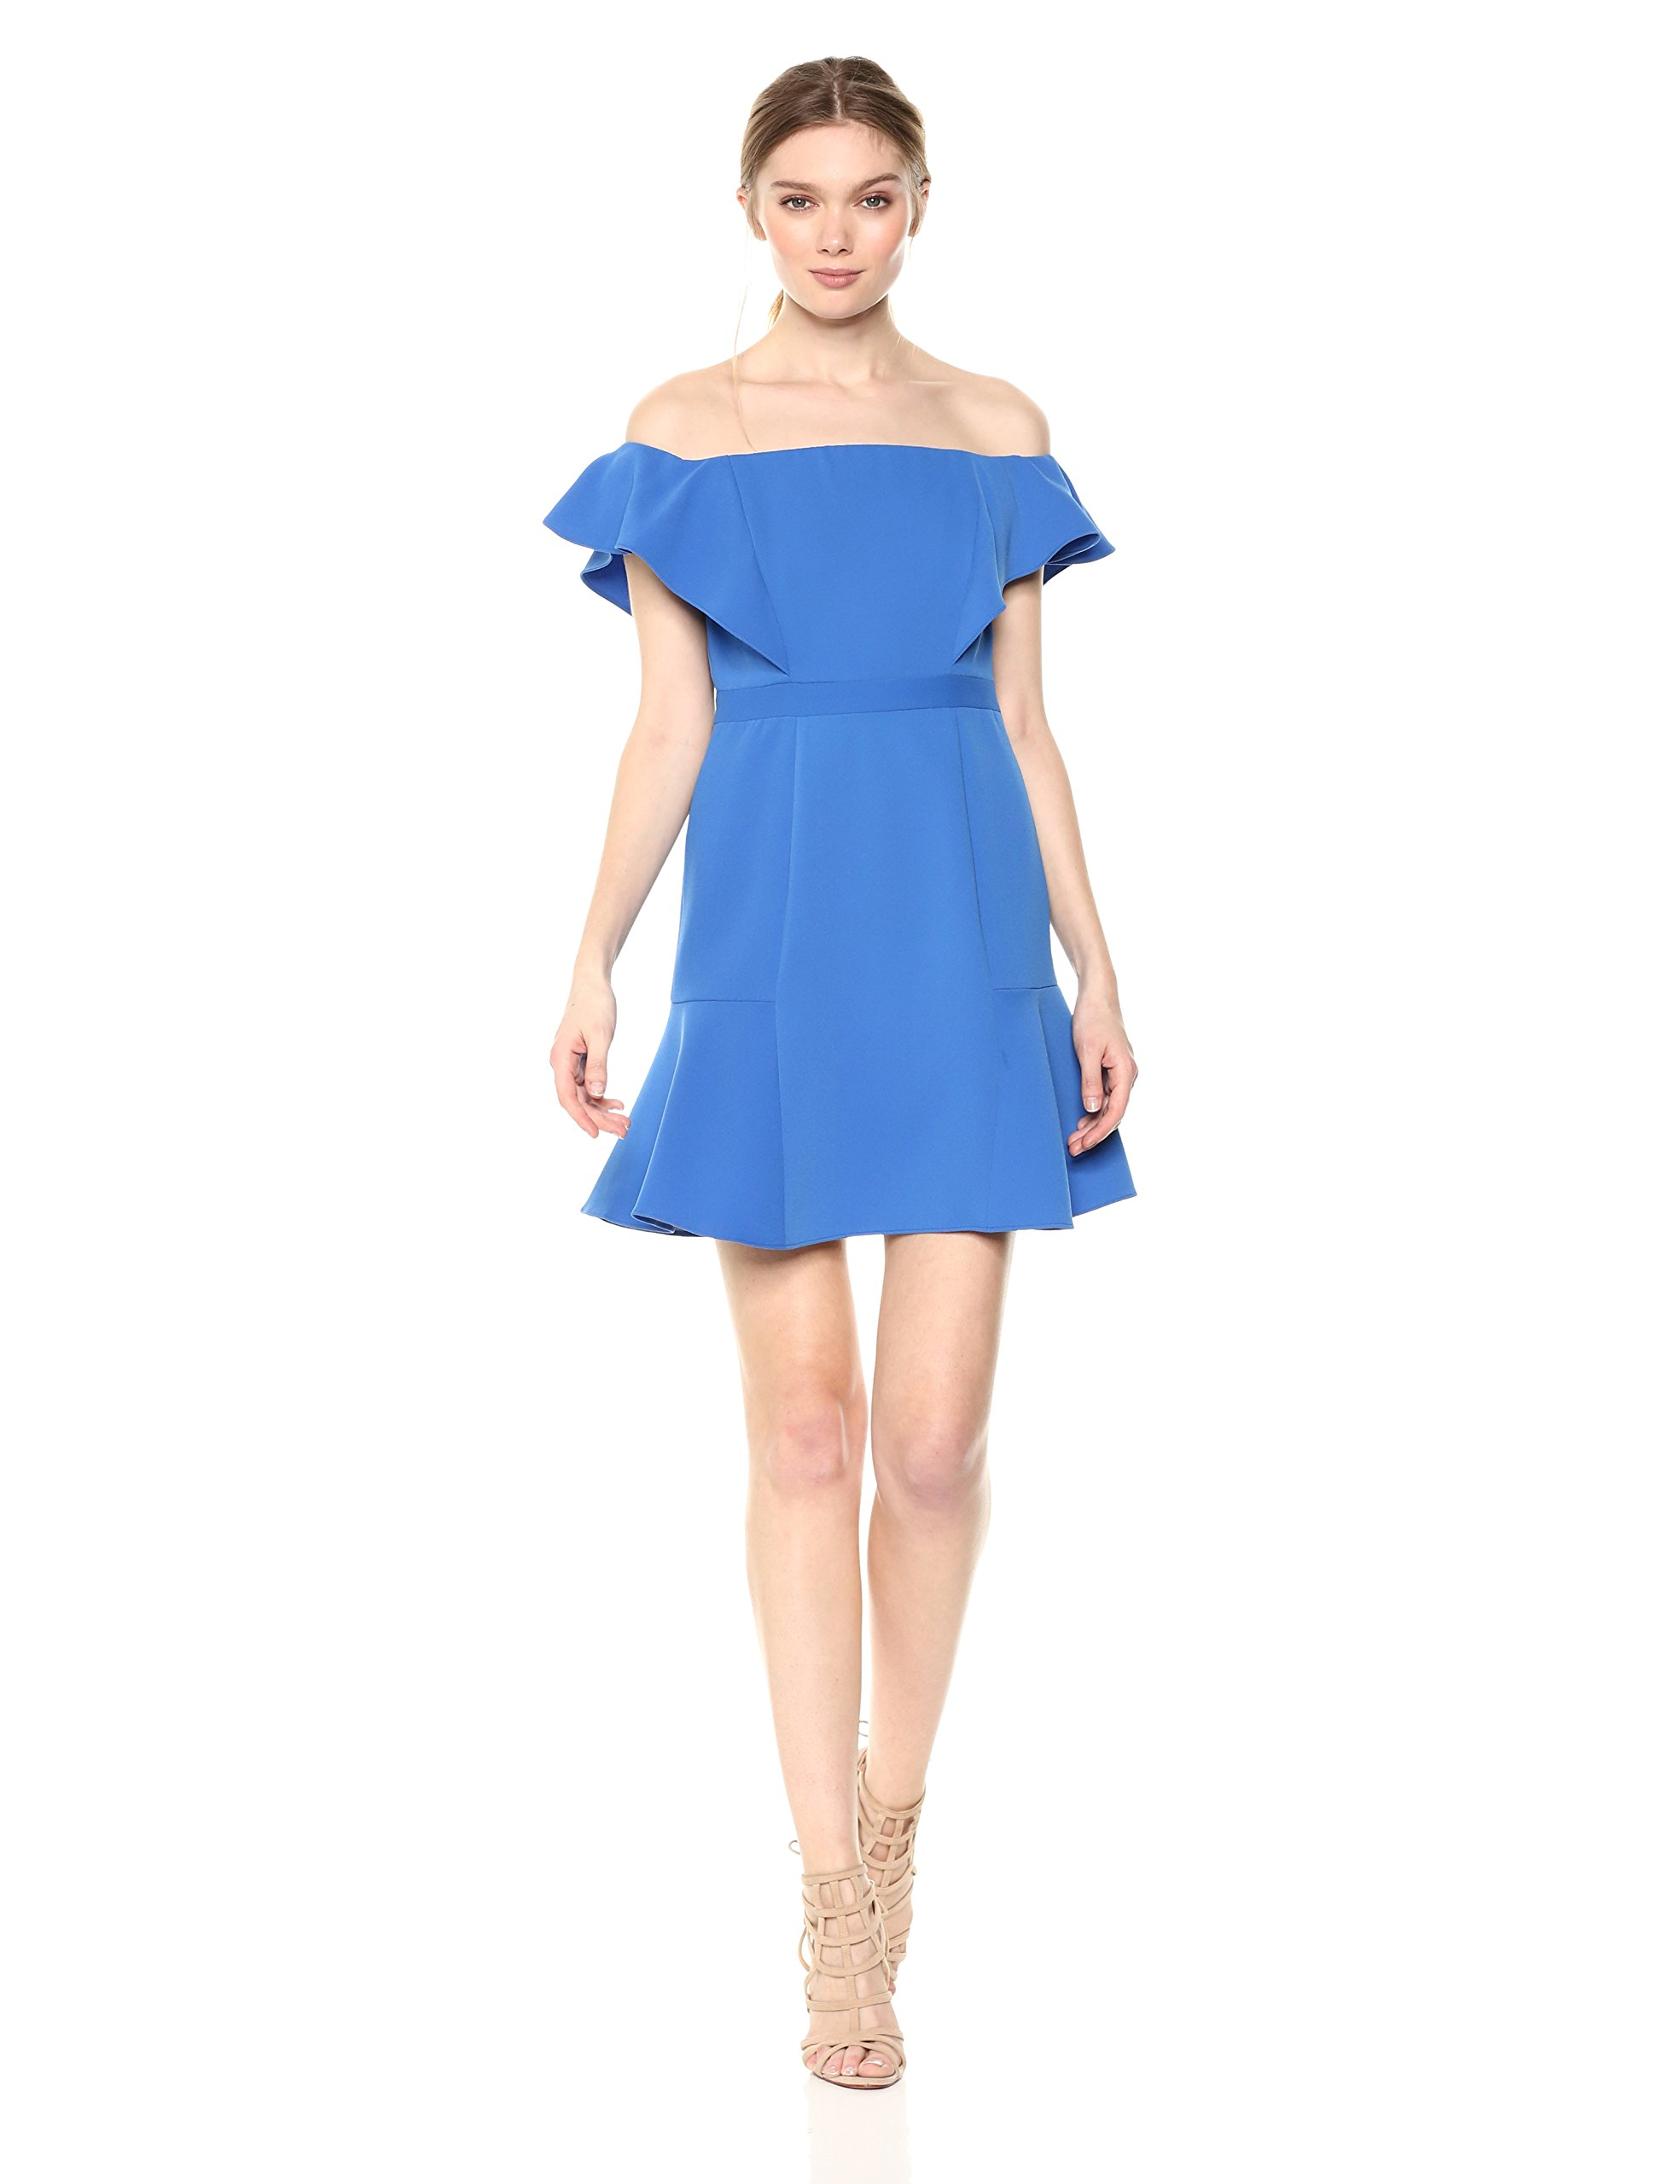 Available at Amazon: BCBGMAXAZRIA Women's Alandra Off-The-Shoulder A-line Dress